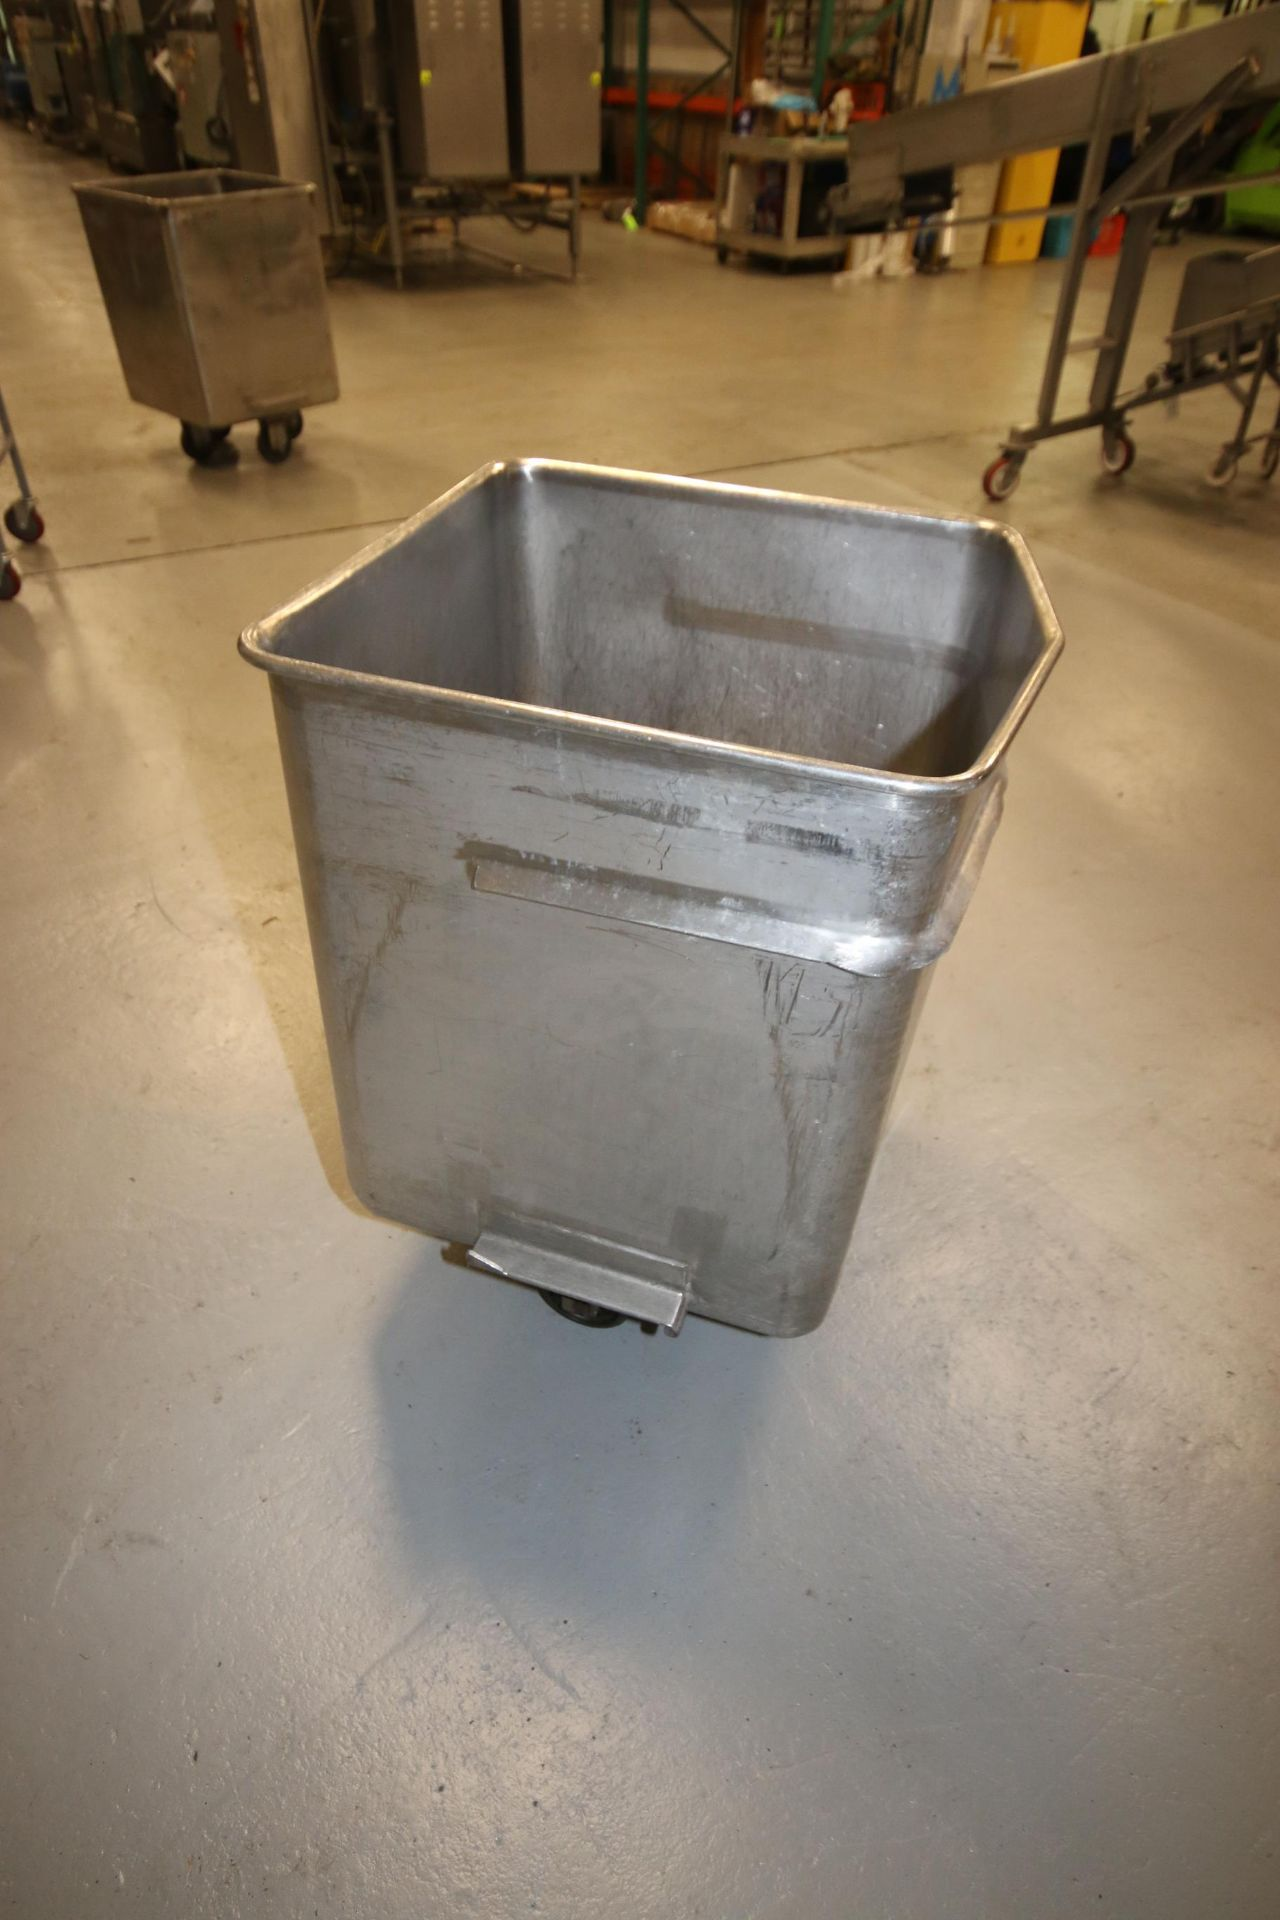 "S/S Portable Totes, Internal Dims.: Aprox. 24"" L x 24-1/2"" W x 31"" Deep, with (4) Bottom Mounted - Image 5 of 13"